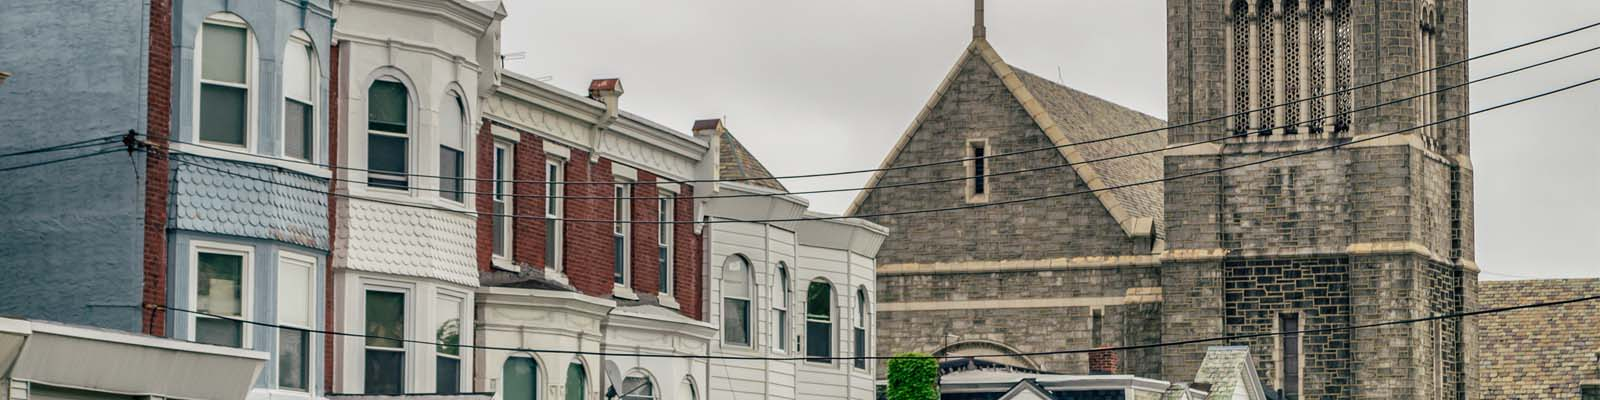 This is an image of downtown Germantown Maryland where ASTA-USA provides professional translation services.